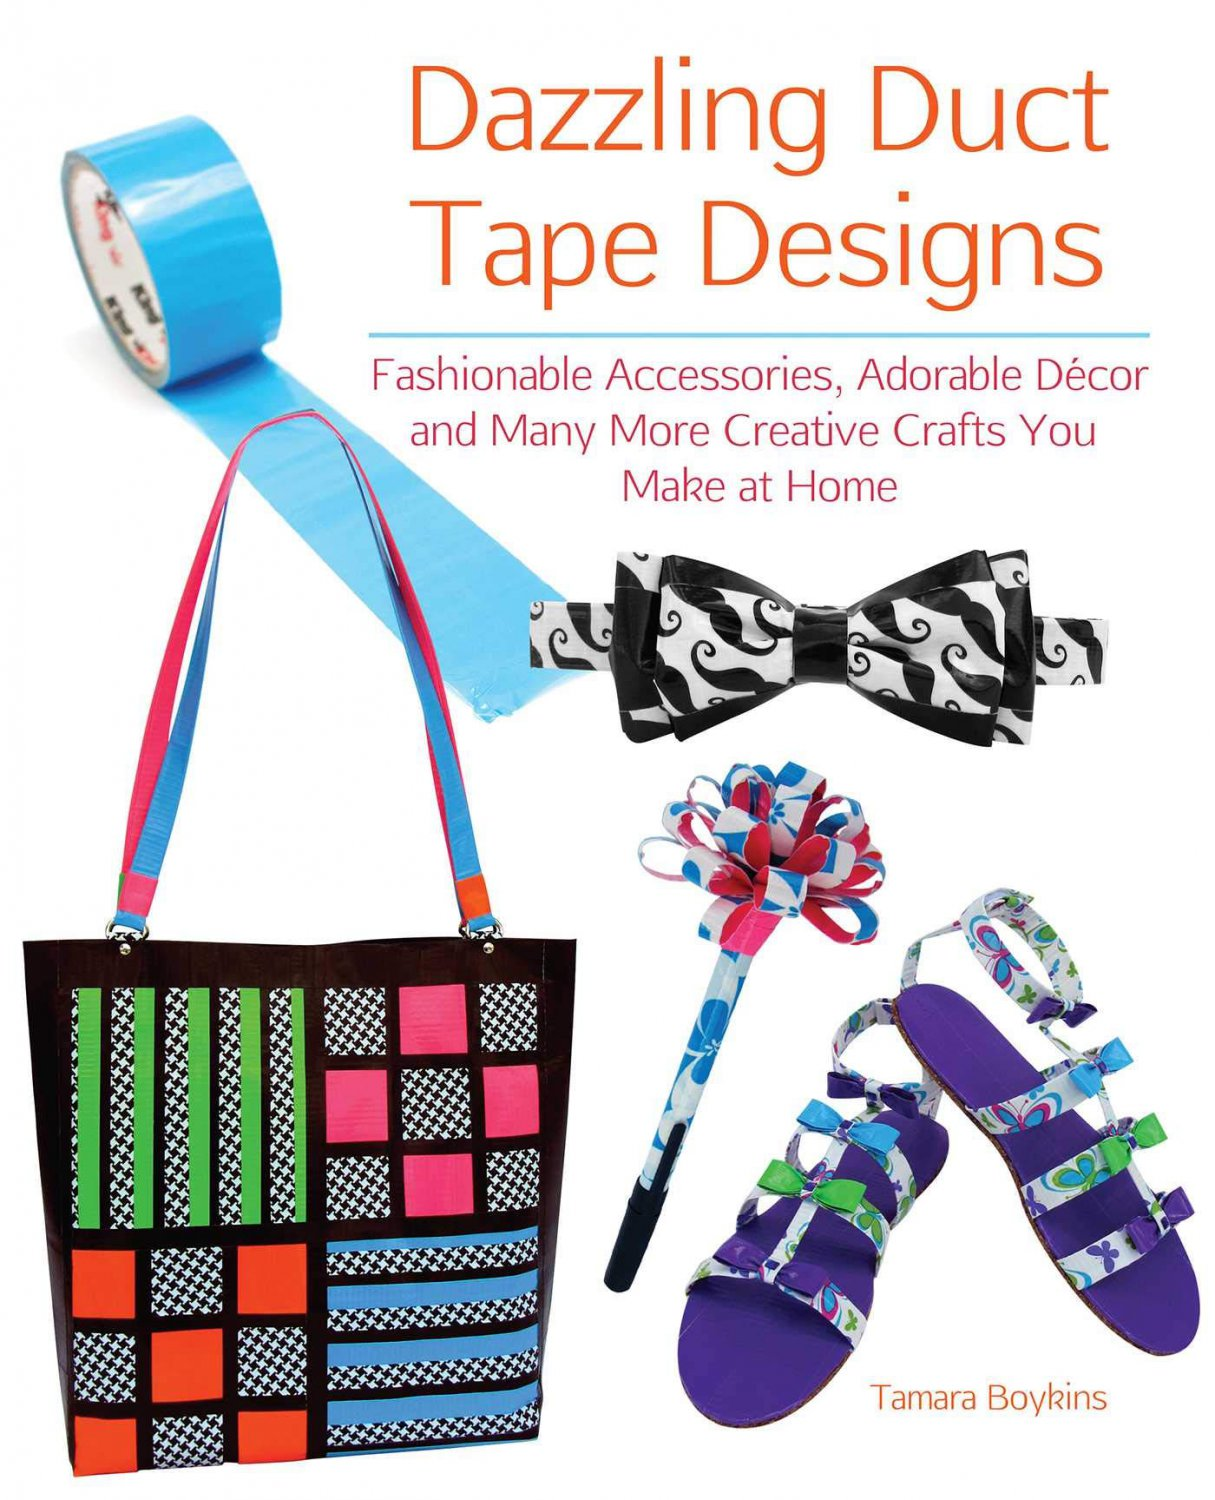 Dazzling Duct Tape Designs